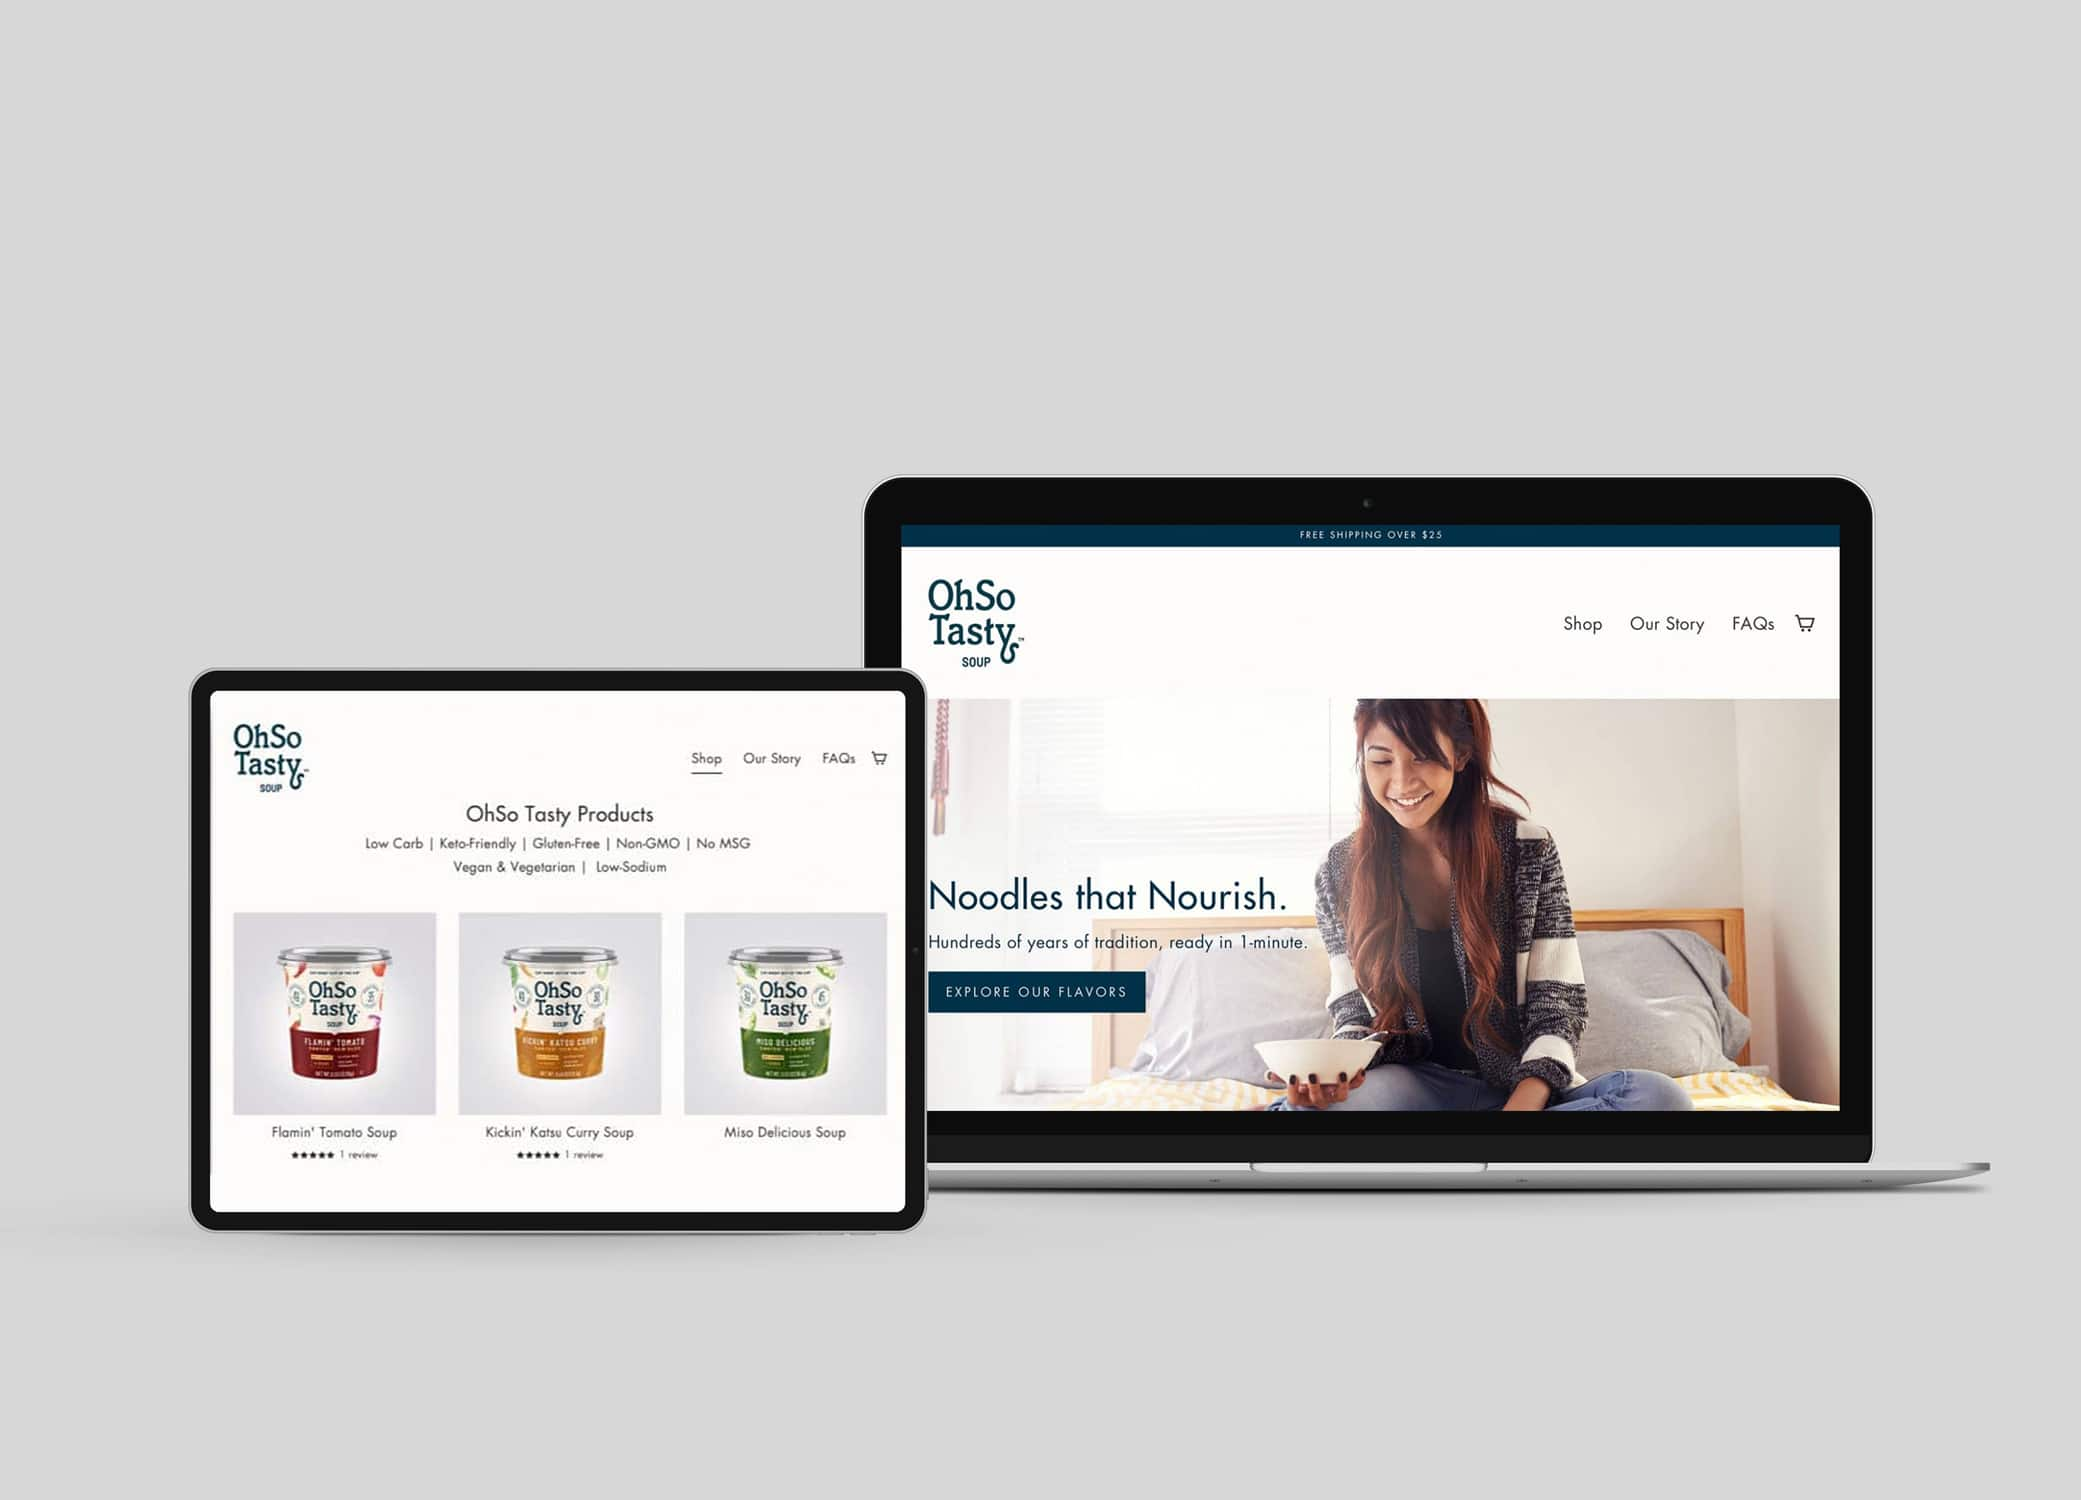 OhSo Tasty food and beverage web design with hero image of a student eating while studying in bed and tagline, soup products displayed.